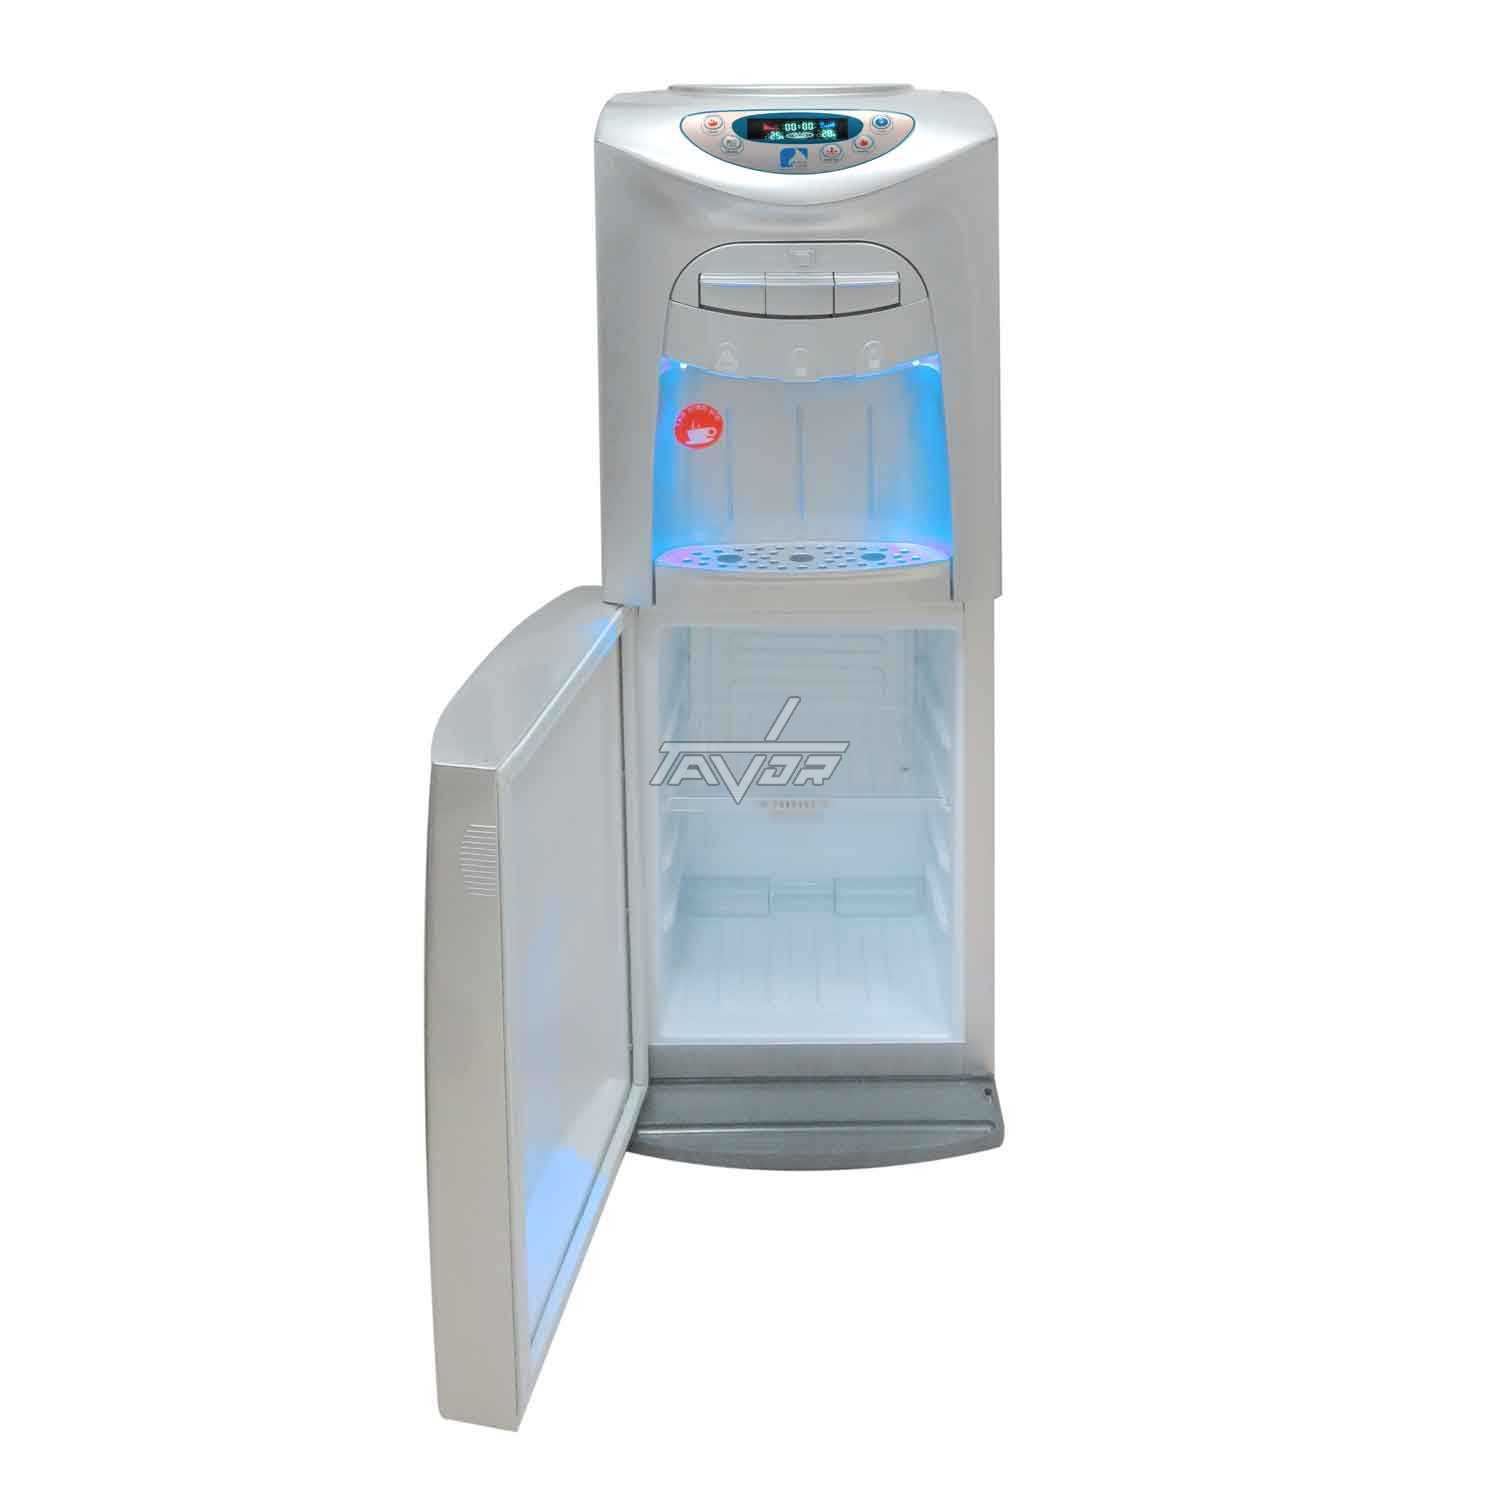 Floor Standing Water Dispenser With 3 Taps And Bottom Refrigerator Model LC20-L03NP Silver Color Body With Silver Front Color- Digital